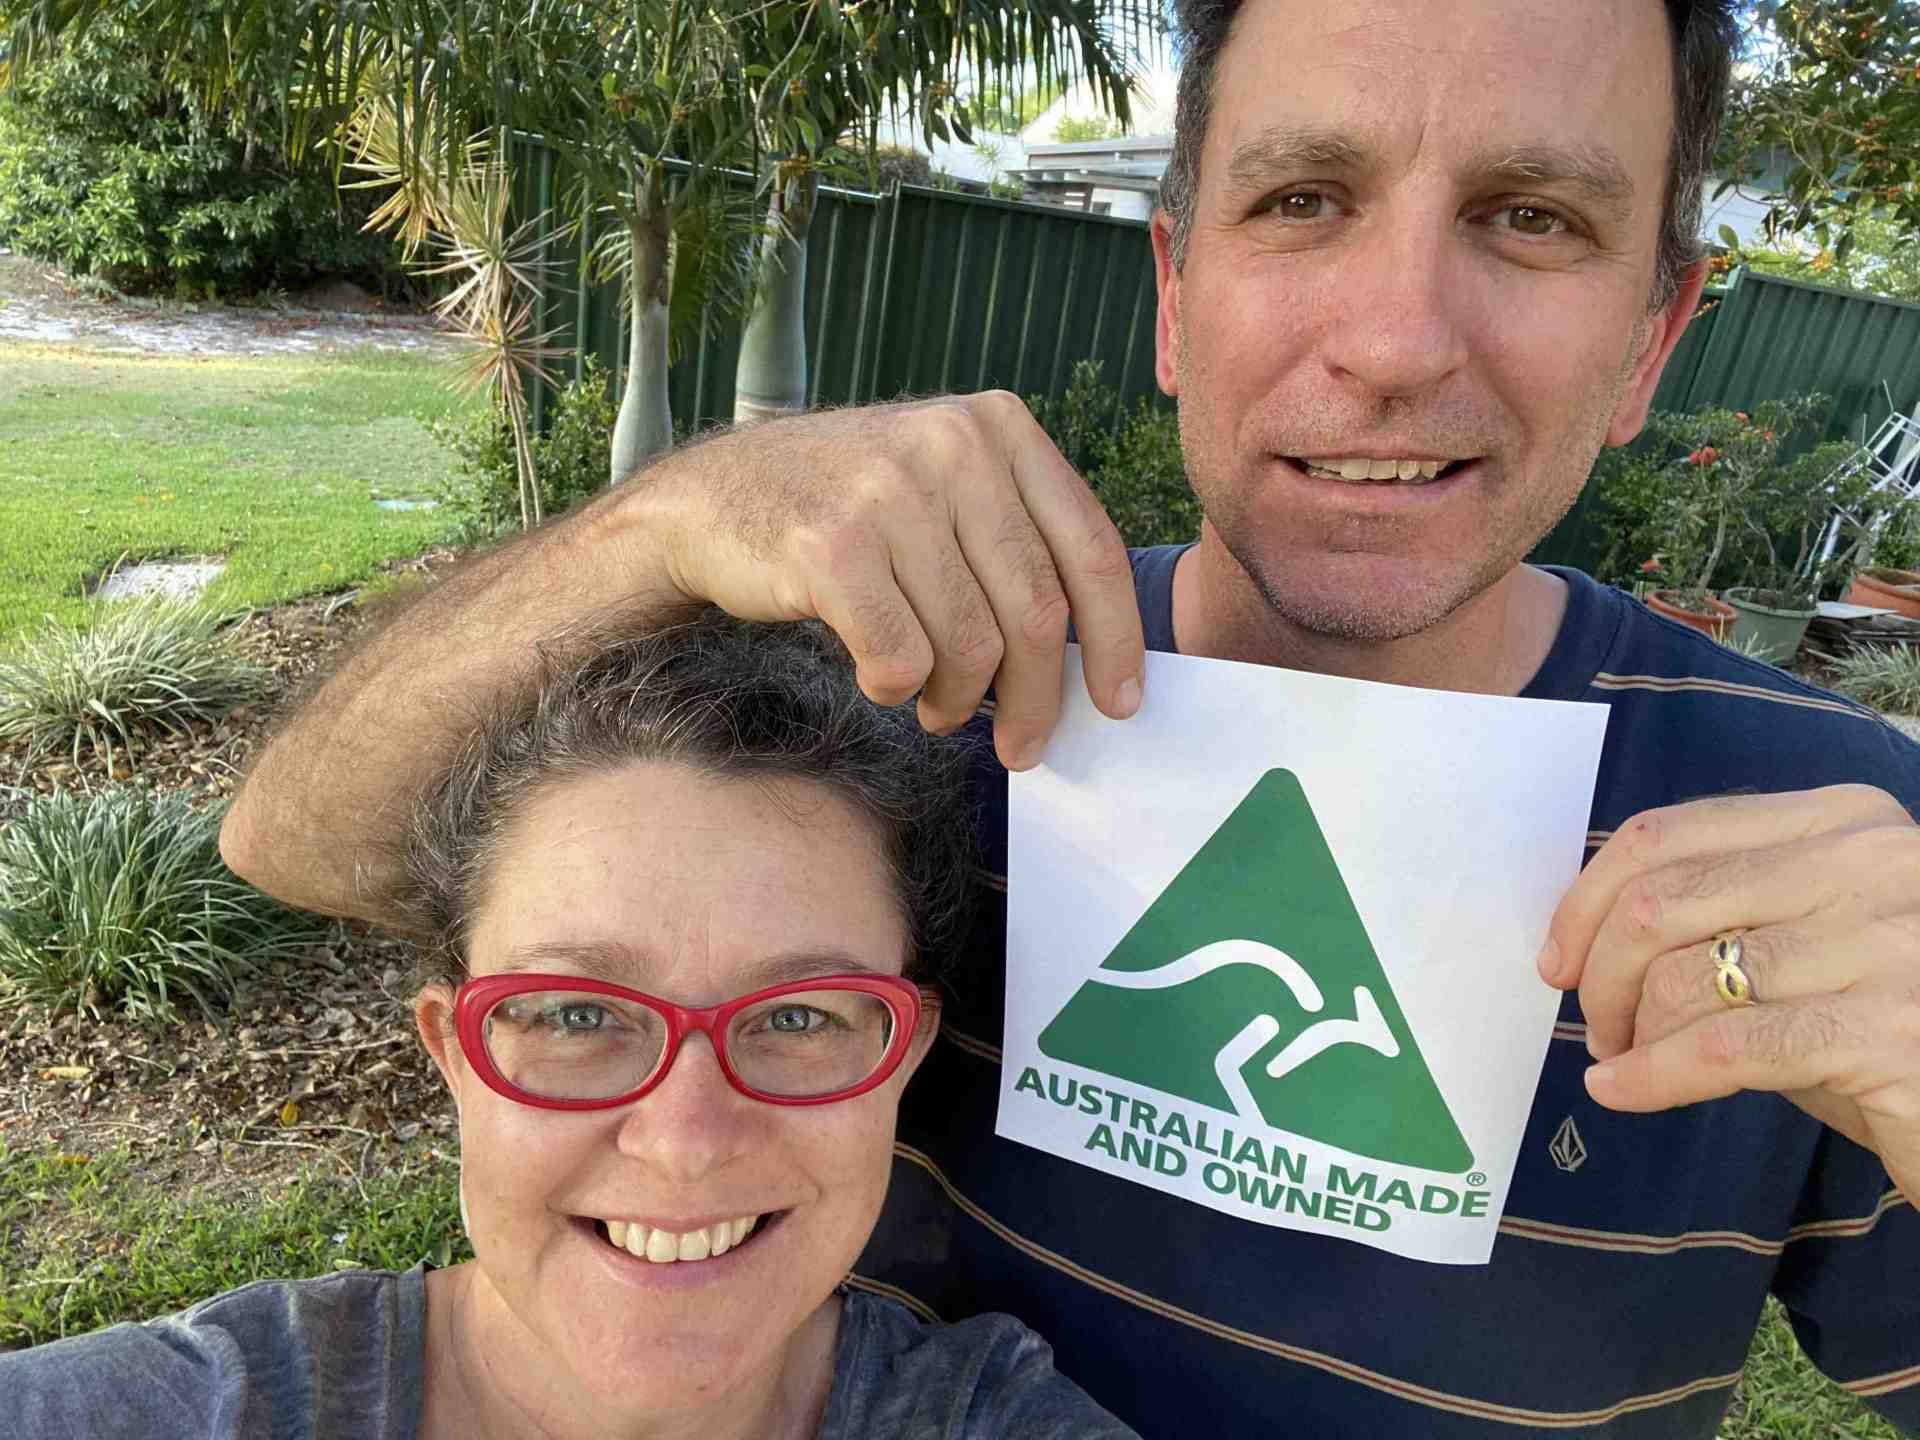 Heatley and Michelle - Camps Made in Australia